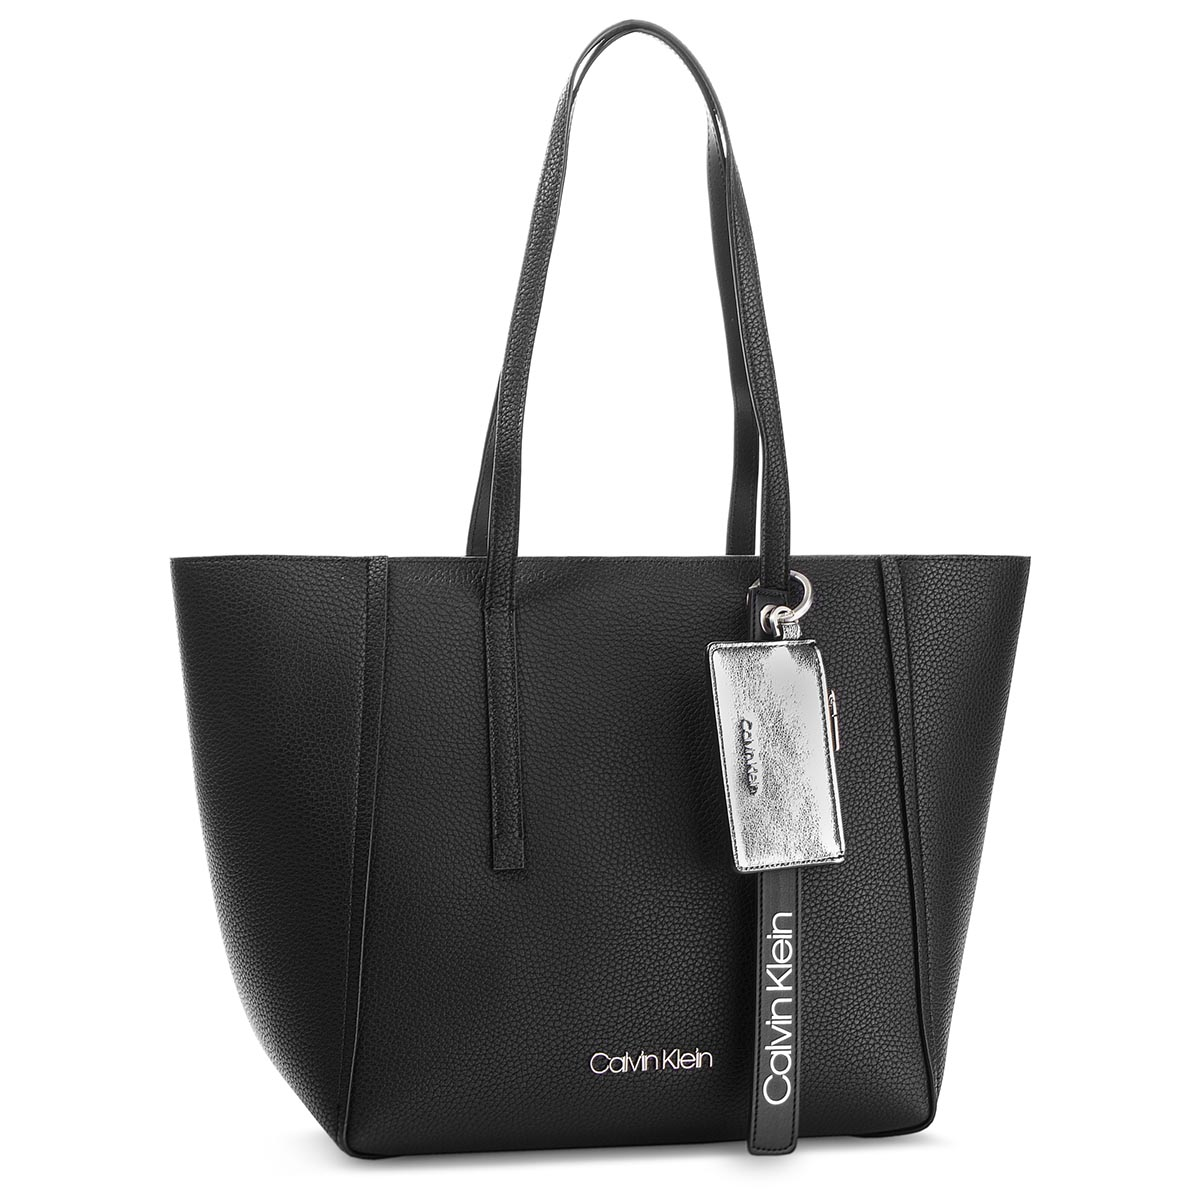 Geantă CALVIN KLEIN - Ck Base Medium Shopper K60K604427 001